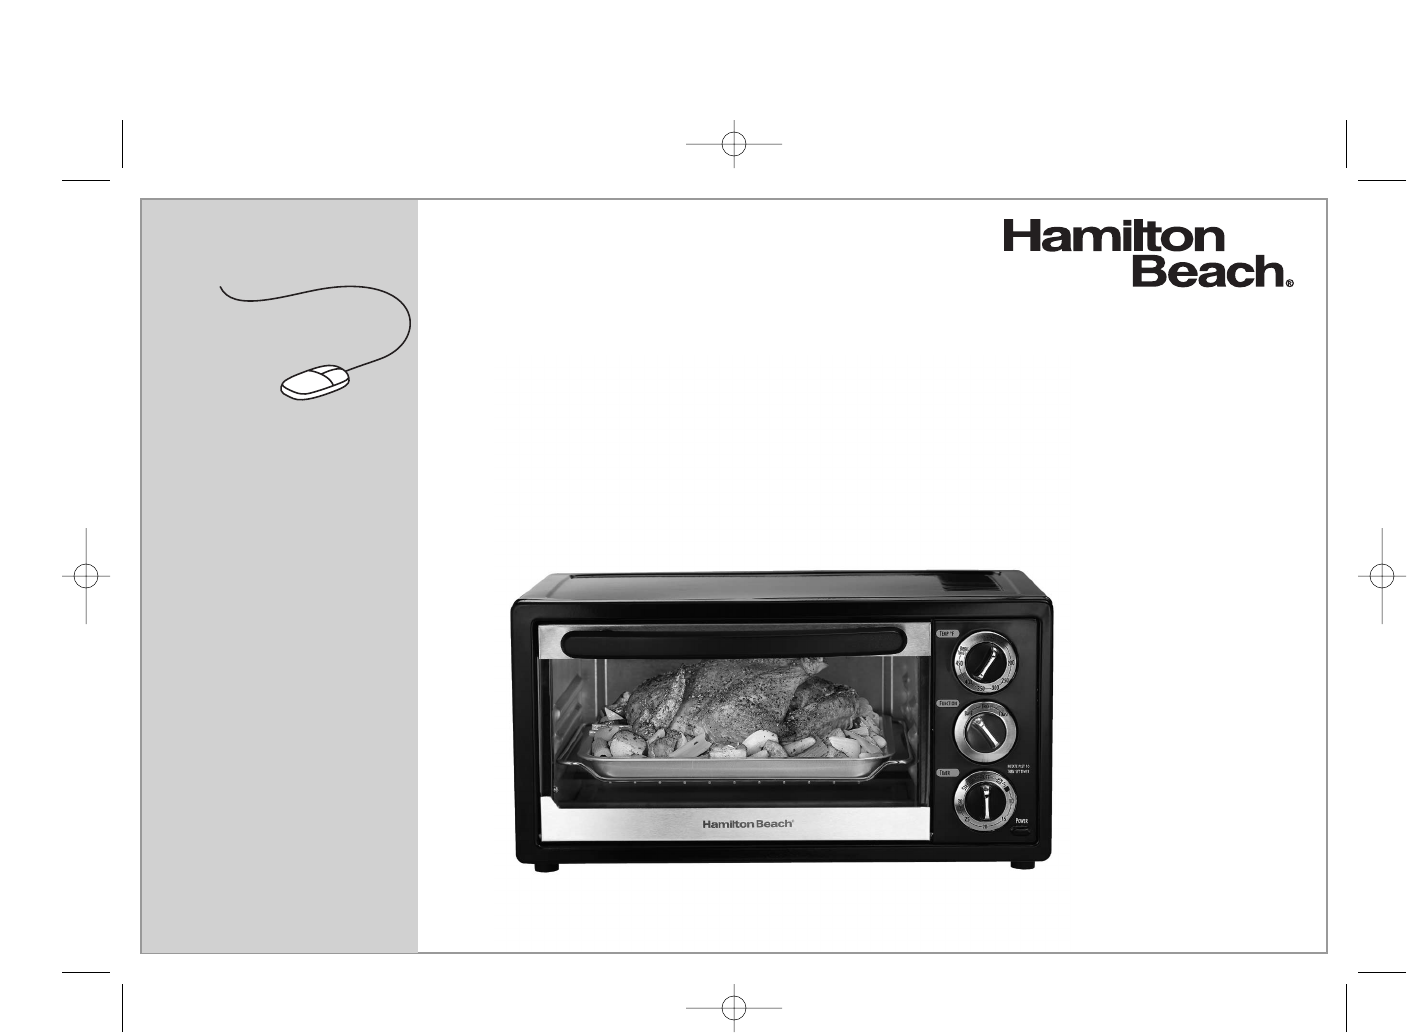 hamilton beach oven 31507 user guide manualsonline com rh kitchen manualsonline com Hamilton Beach Food Processor Parts Hamilton Beach Blender